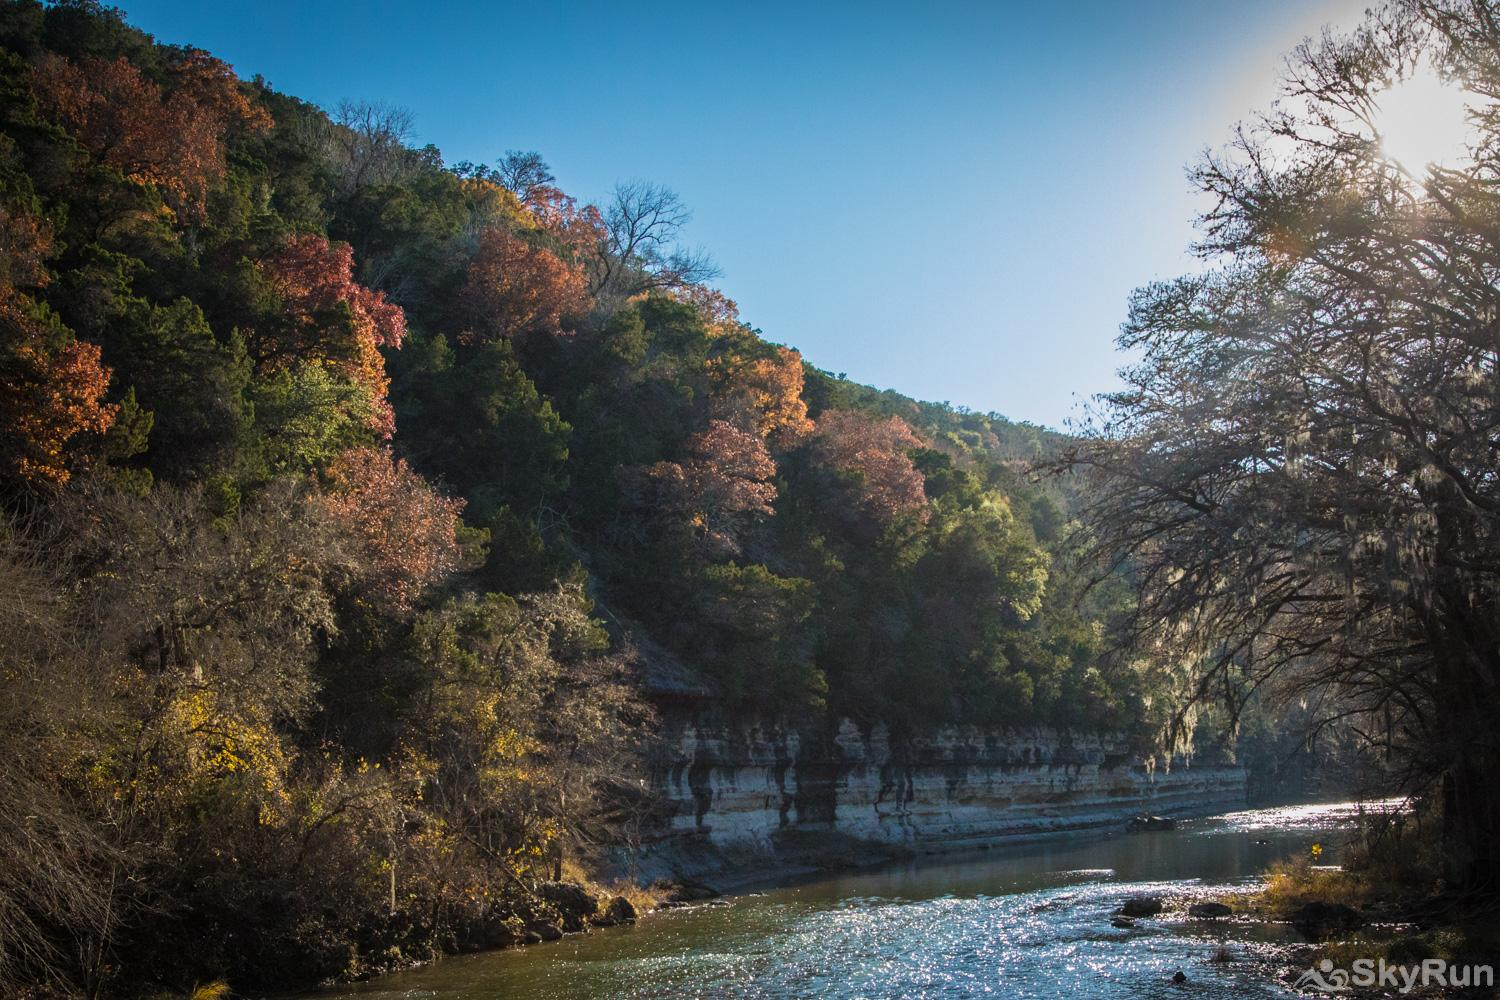 MAC'S PLACE The Picturesque Texas Hill Country